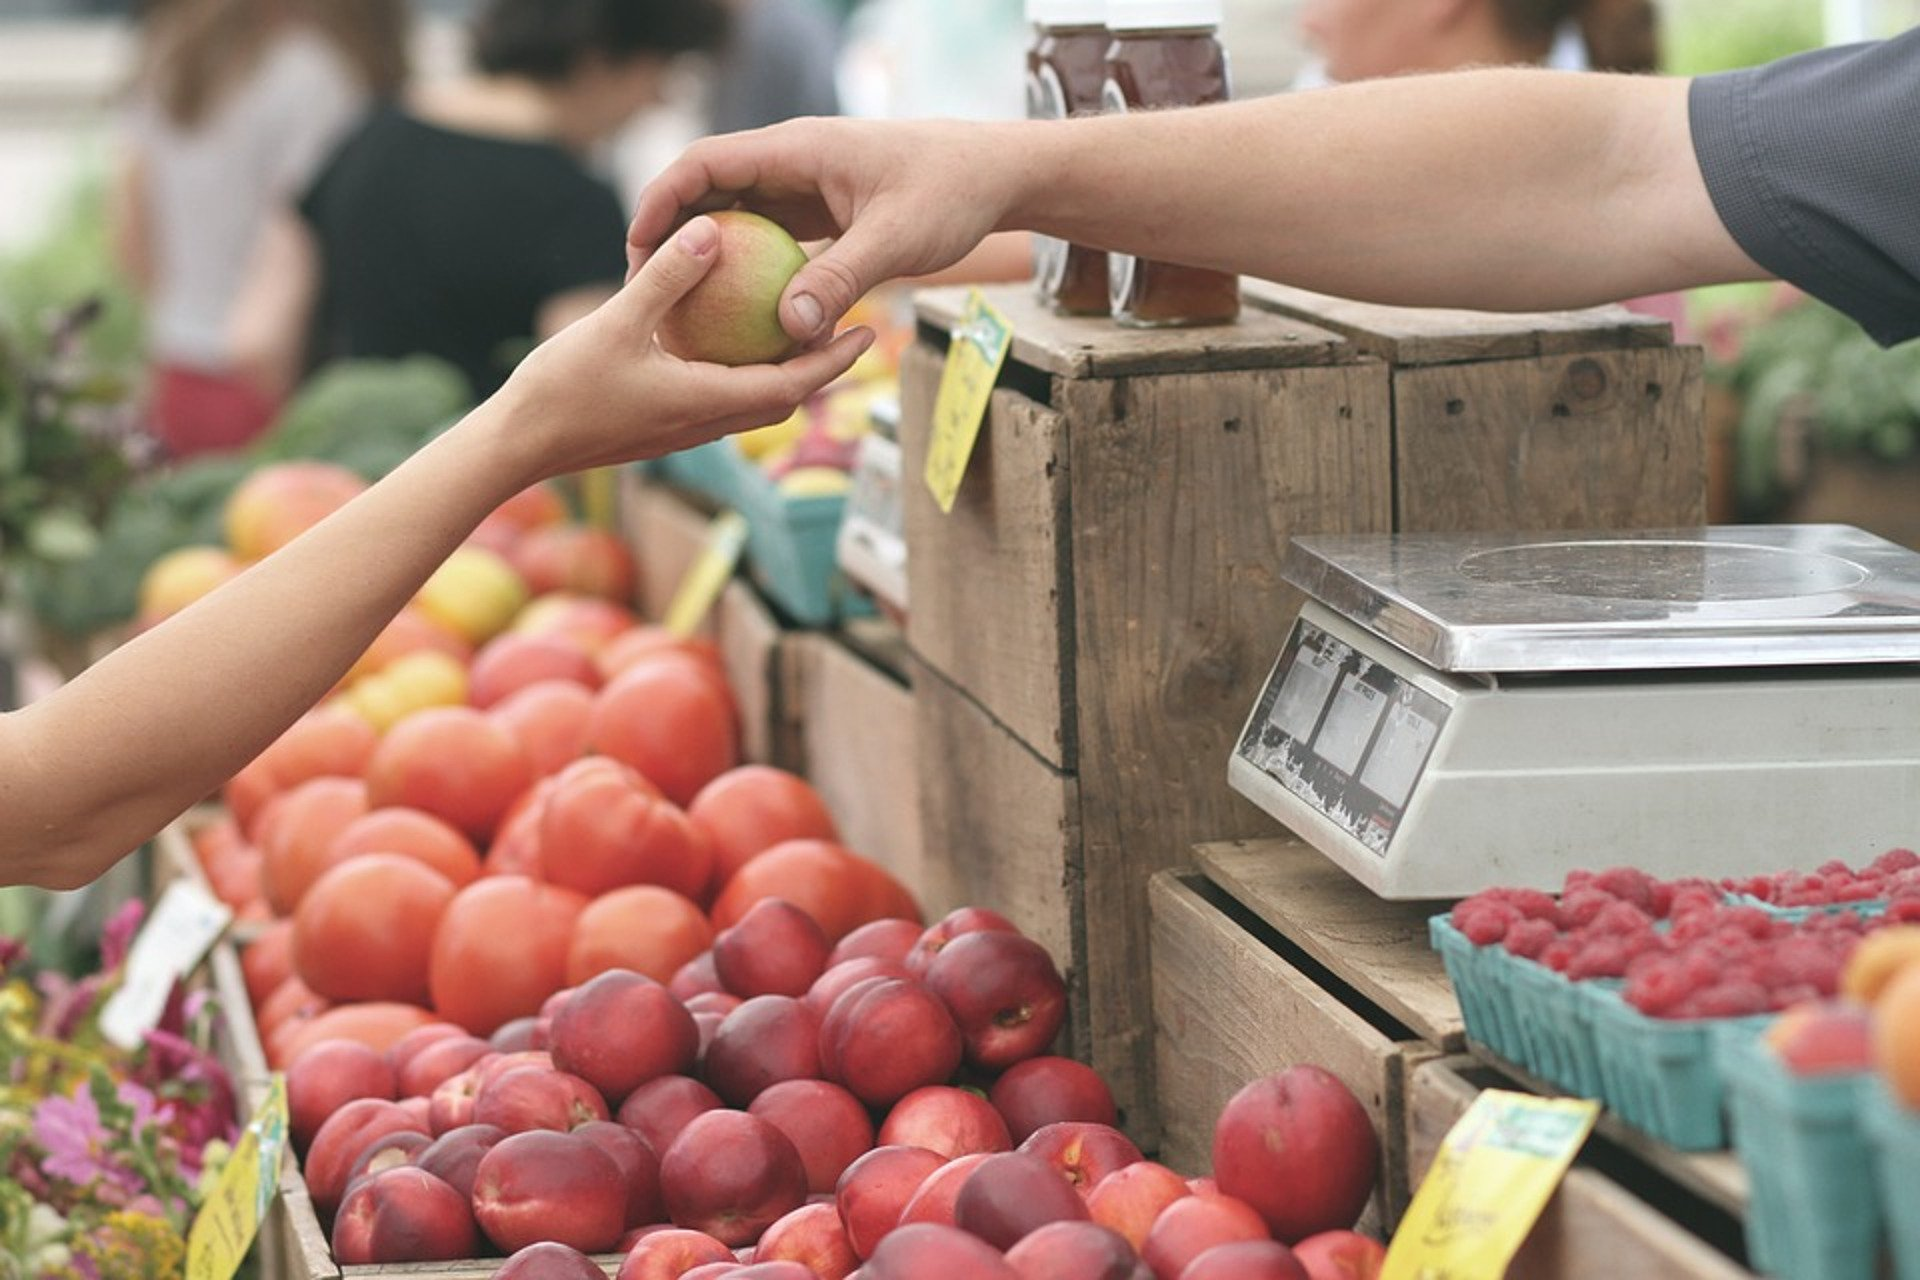 an apple changing hands during a market